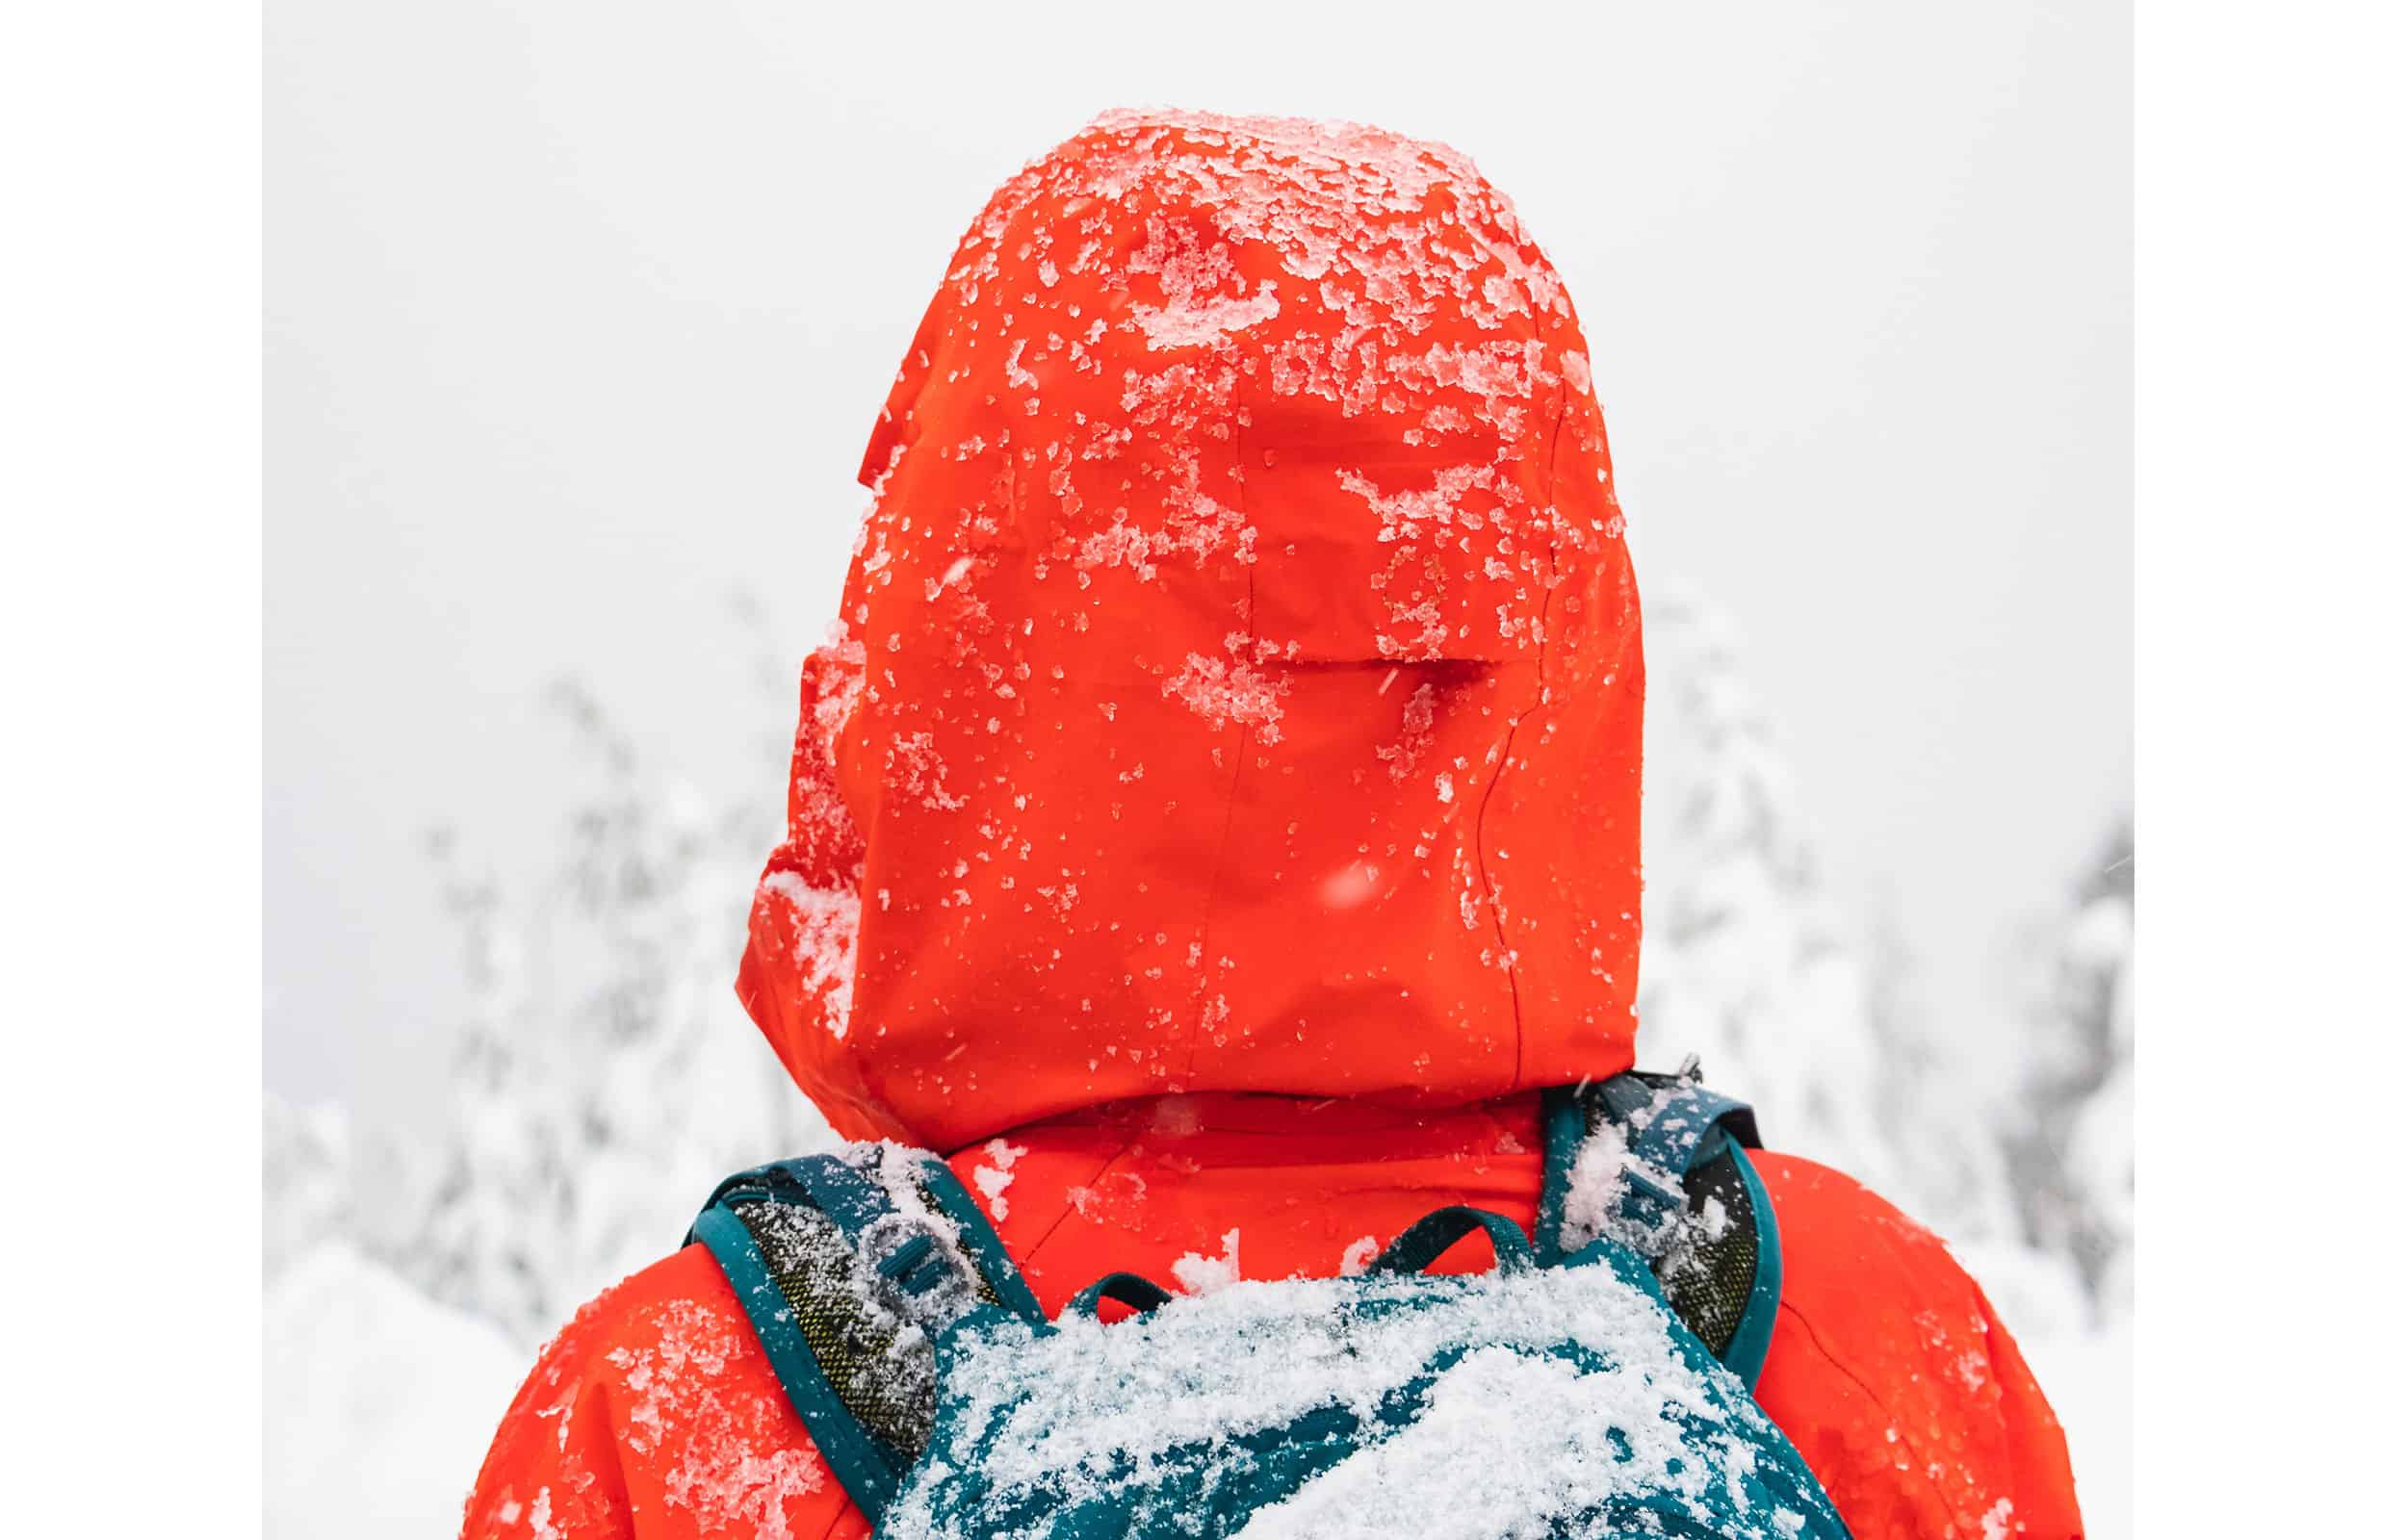 snow falling on a red jacket hood